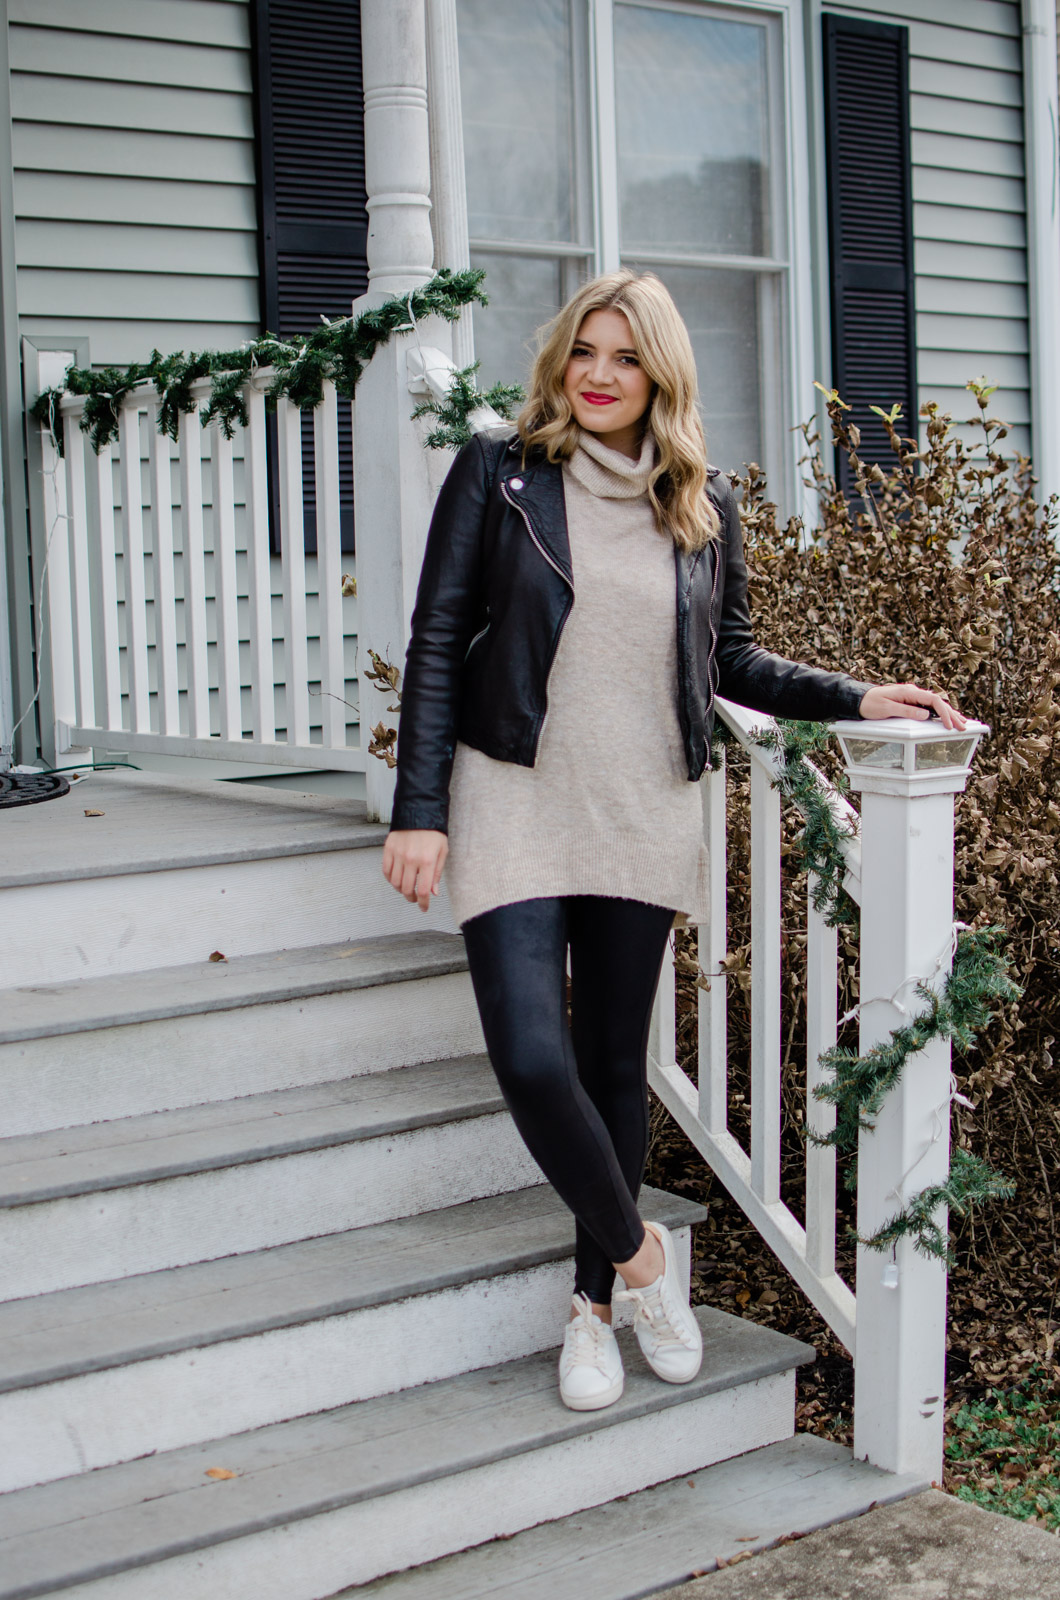 six leather jacket outfits - how to wear a leather jacket with a tunic sweater | See the additional five leather jacket outfit ideas at bylaurenm.com!